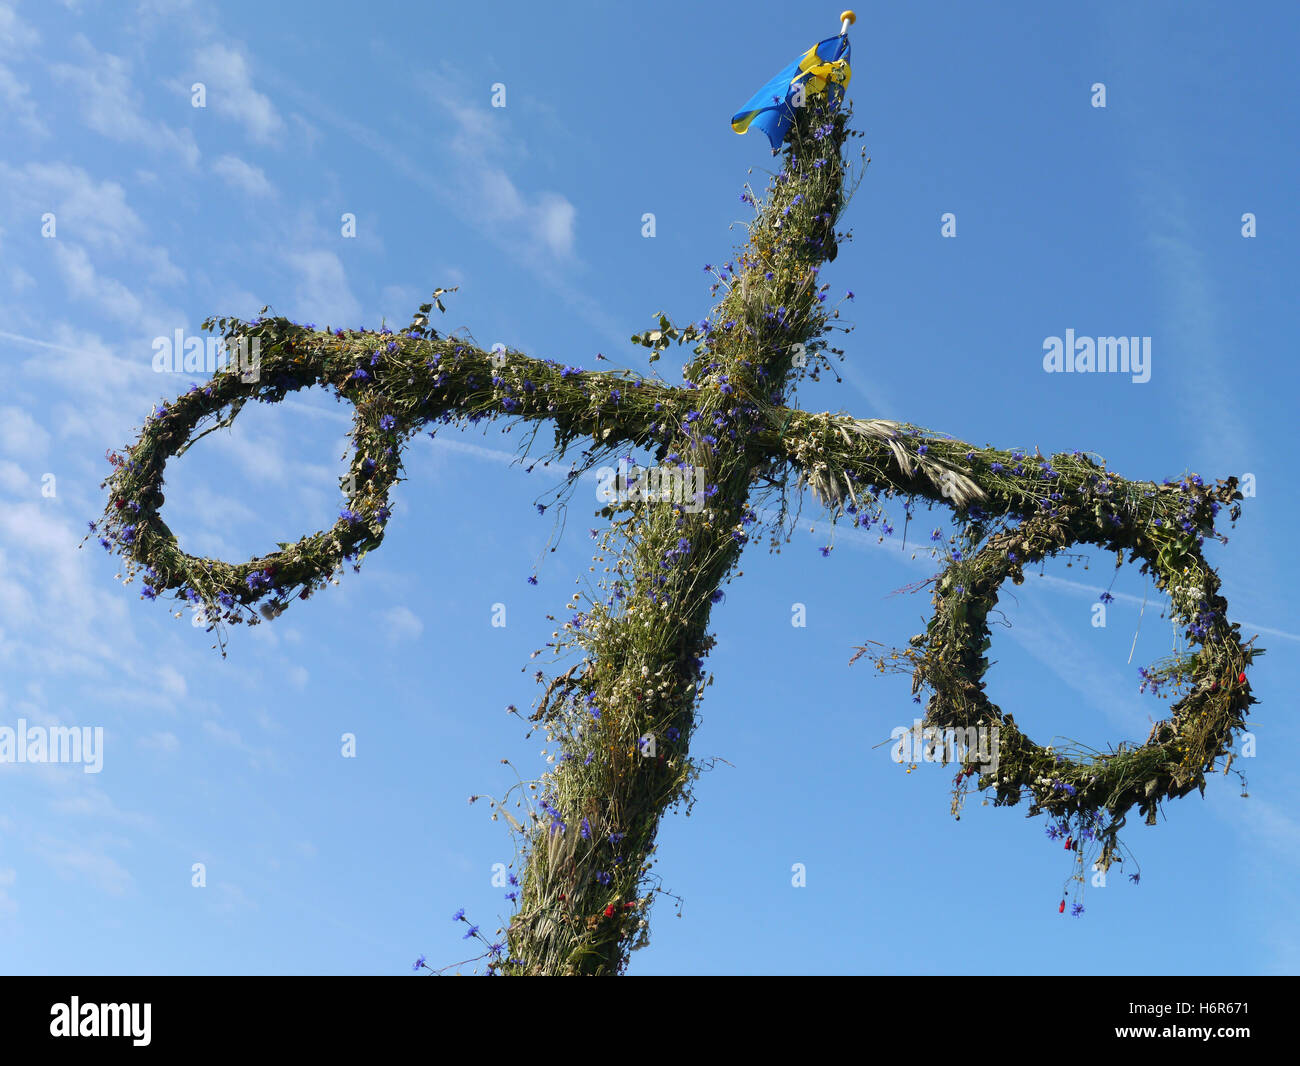 midsommar stock photos amp midsommar stock images alamy